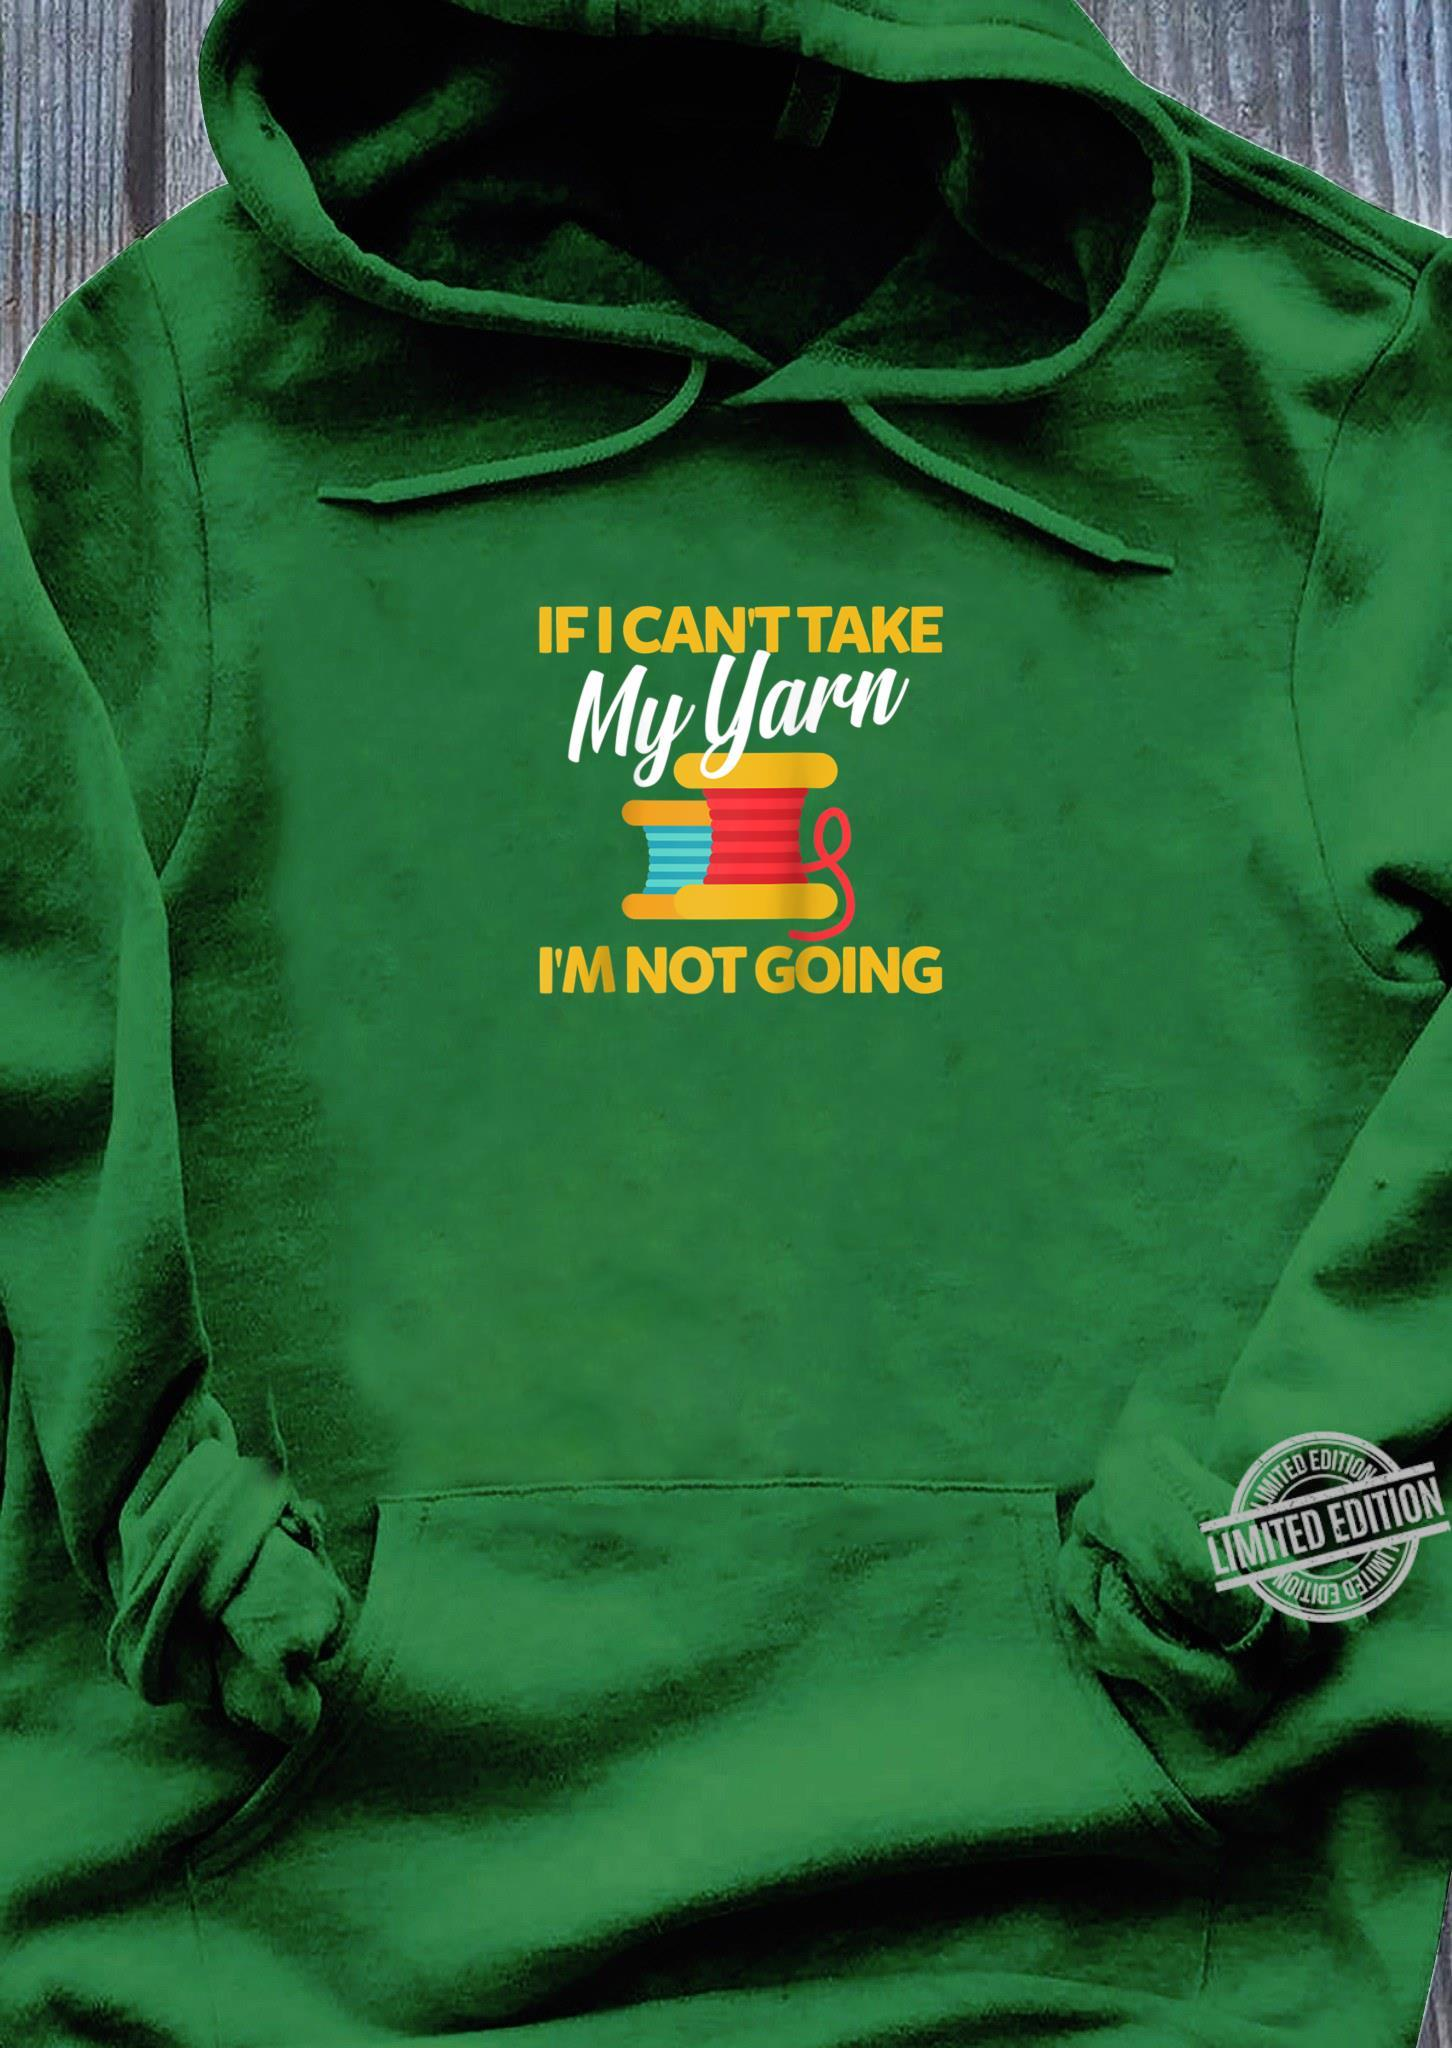 If I Can't Take My Yarn I'm Not Going Yarns Knitting Shirt hoodie